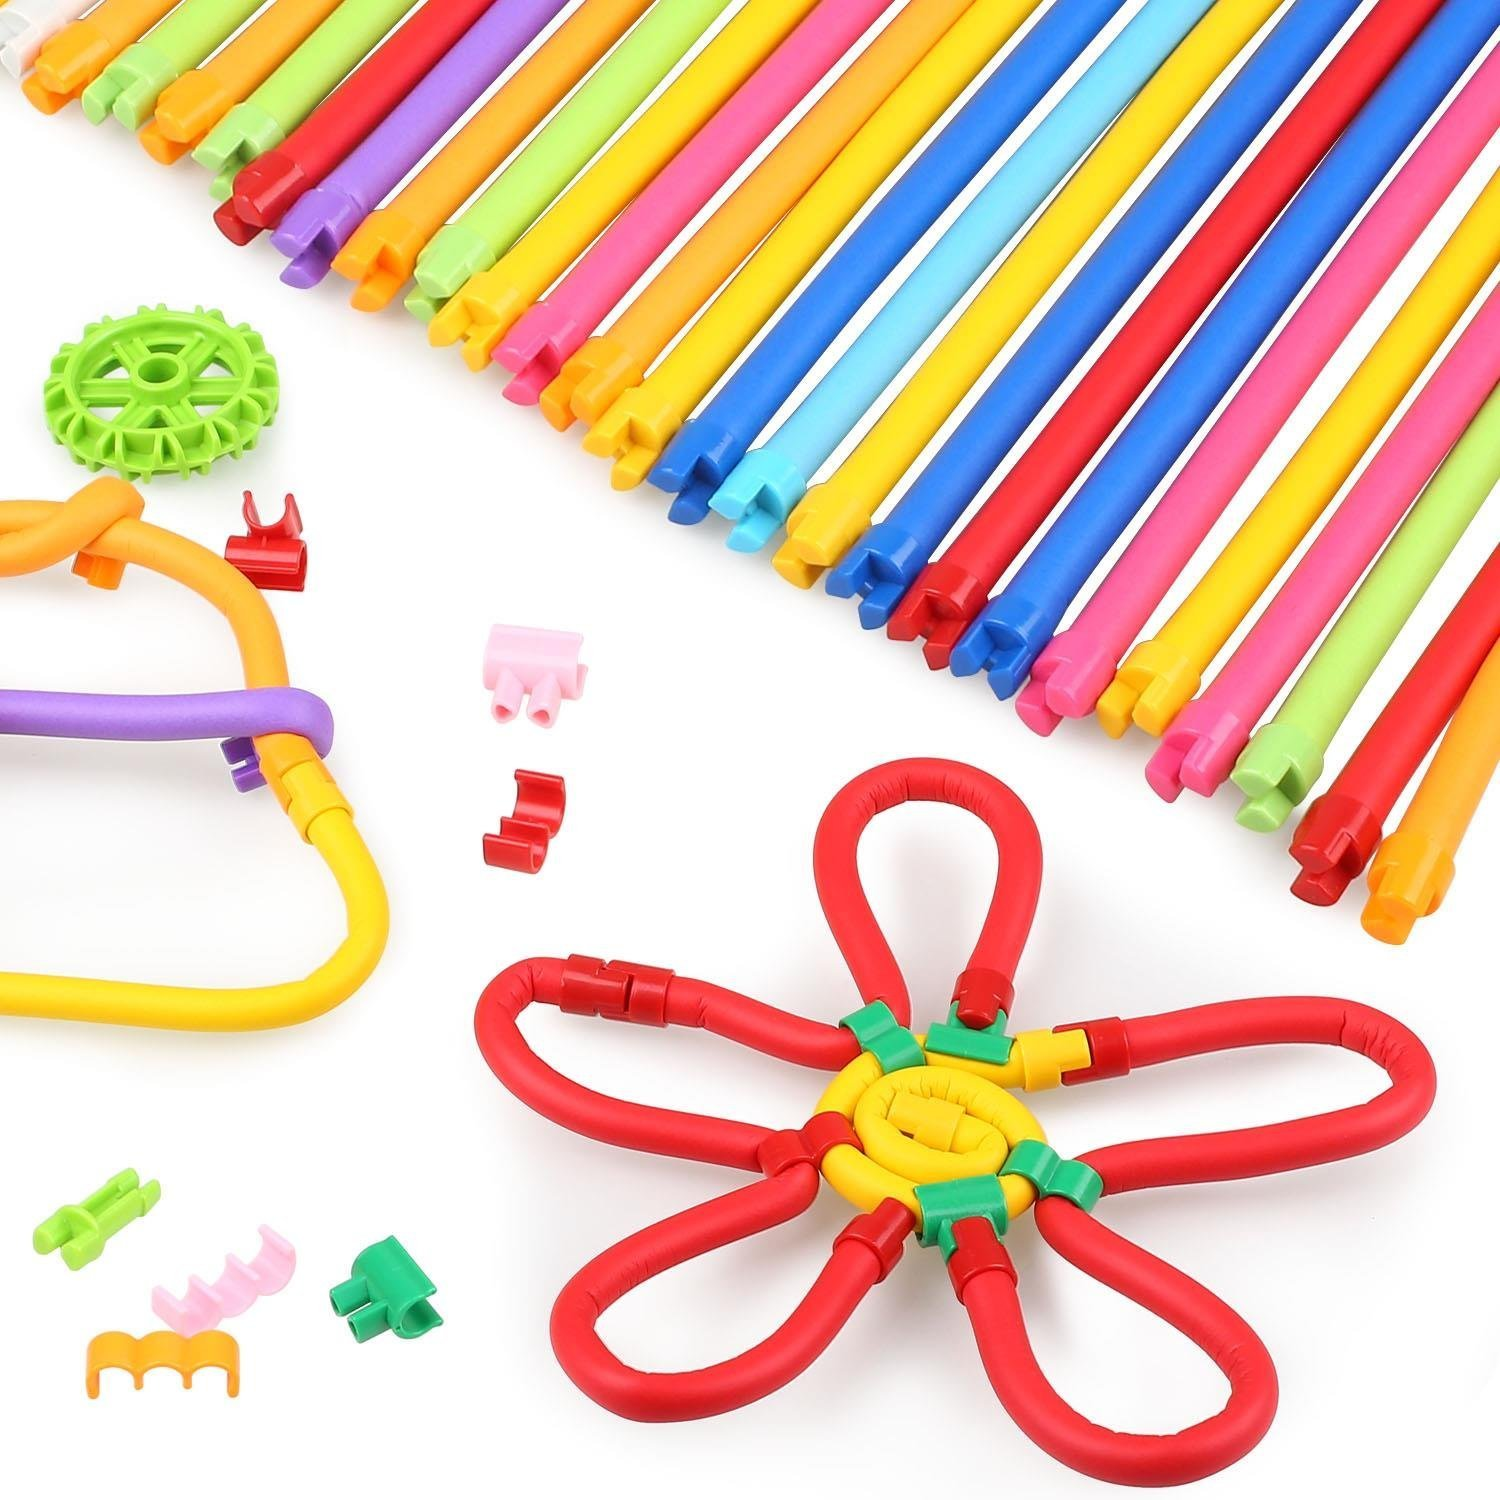 SACHUKOT 75 PCS DIY Learning Toys Building Blocks for Kids, 360° Bendable Building Sticks Toy for Imagination Education Early Learning Gifts